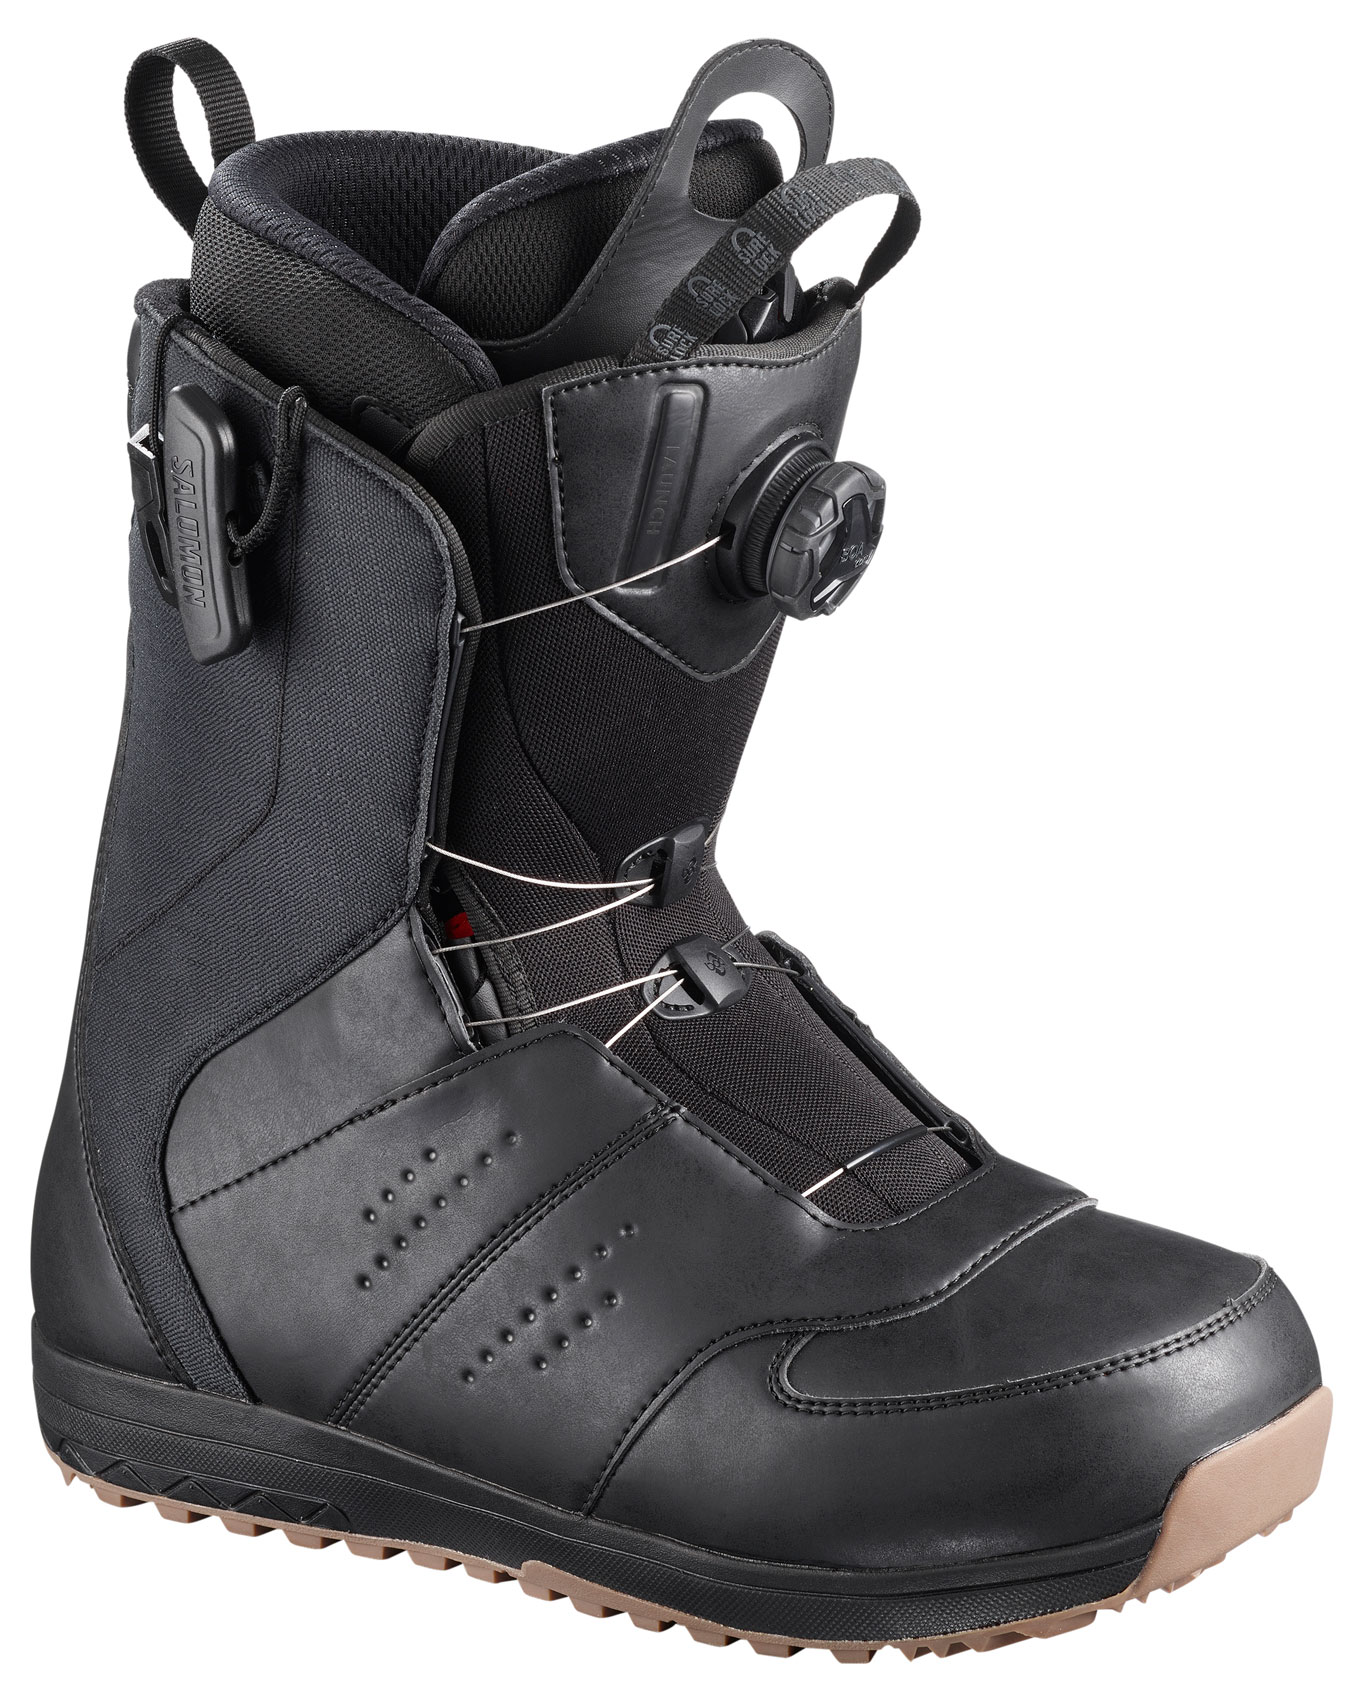 096744d6de0e Salomon Launch Boa SJ Snowboard Boot 2019